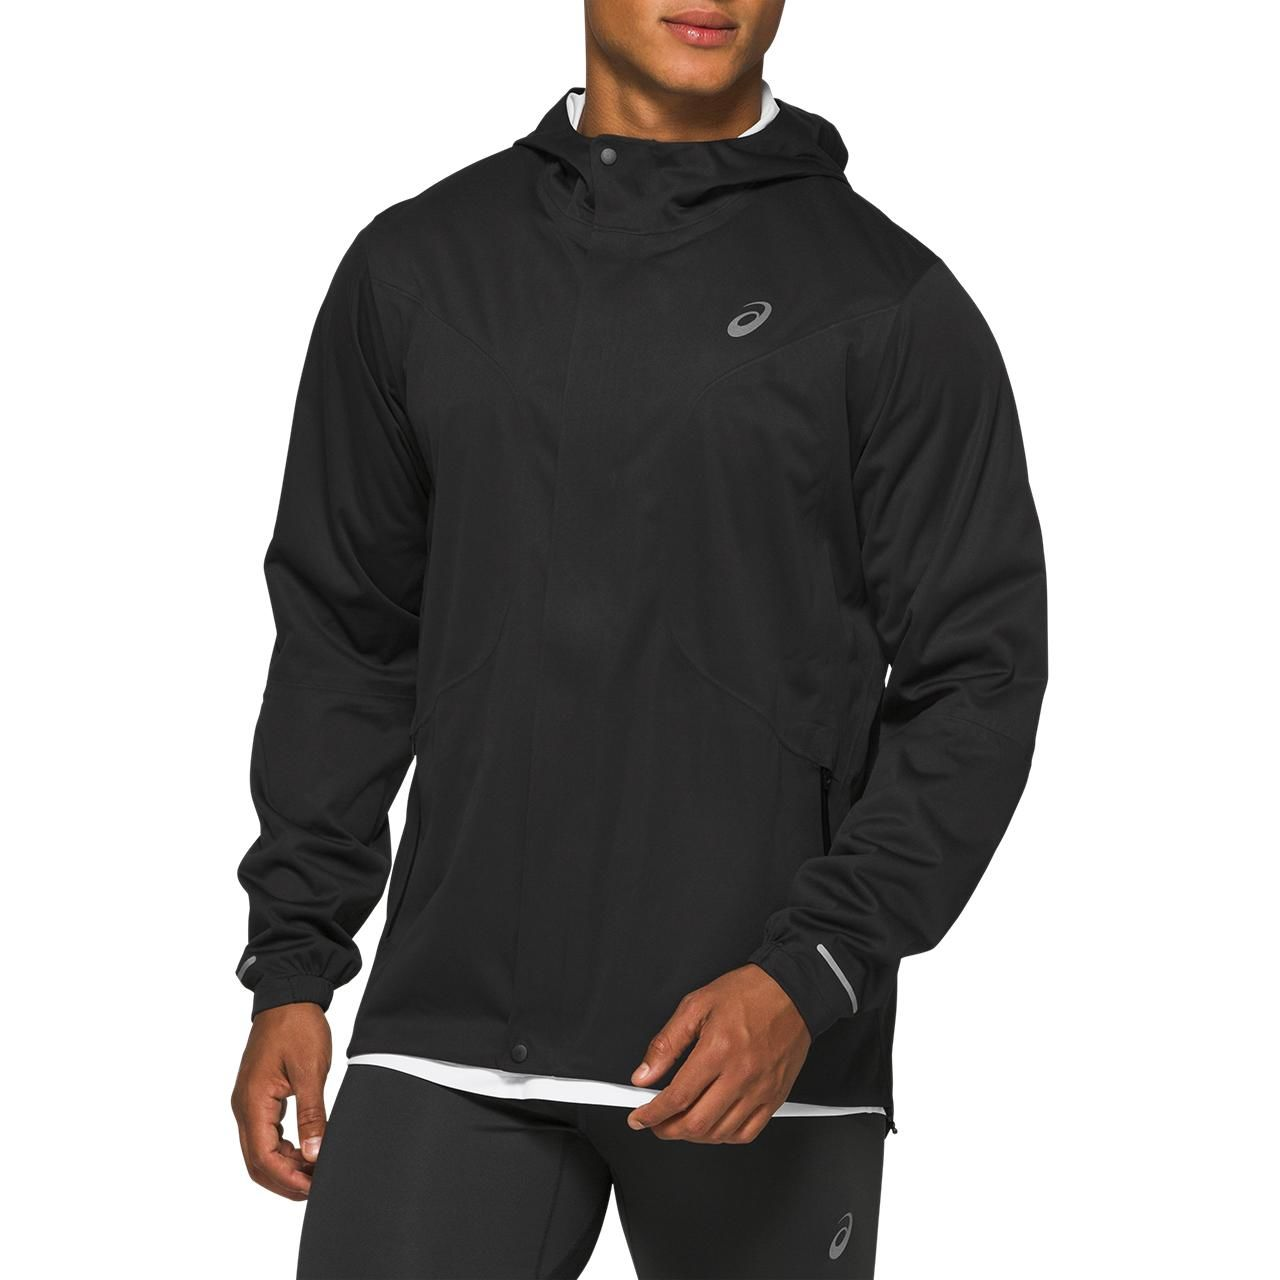 Asics Accelerate Jacket (Black)